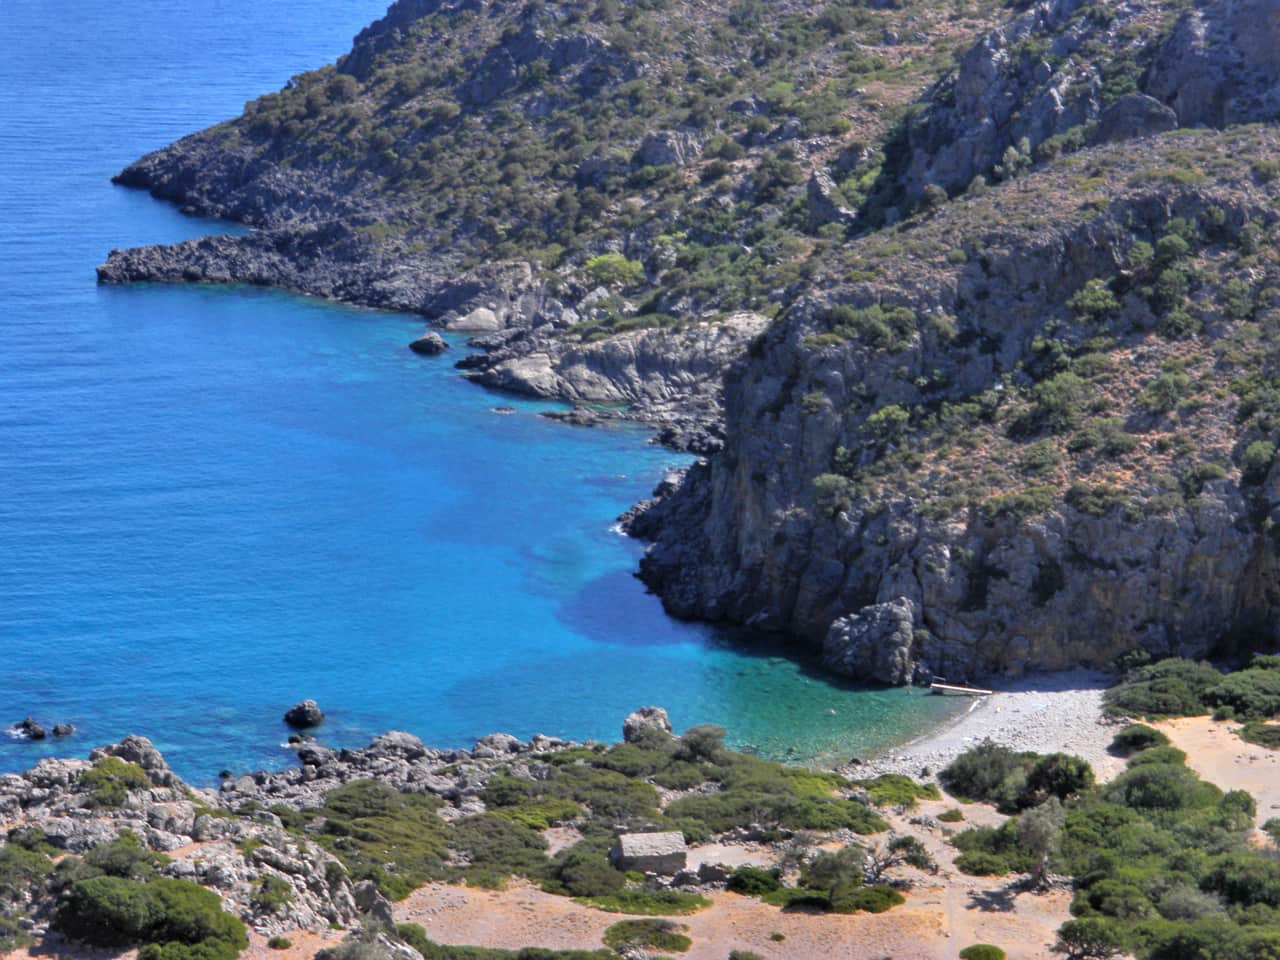 ancient lissos, Sougia village chania travel guide, sougia village hotels, where to stay sougia village, sougia activities, things to do sougia, sougia restaurants, sougia what to see do, crete travel, the crete you are looking for